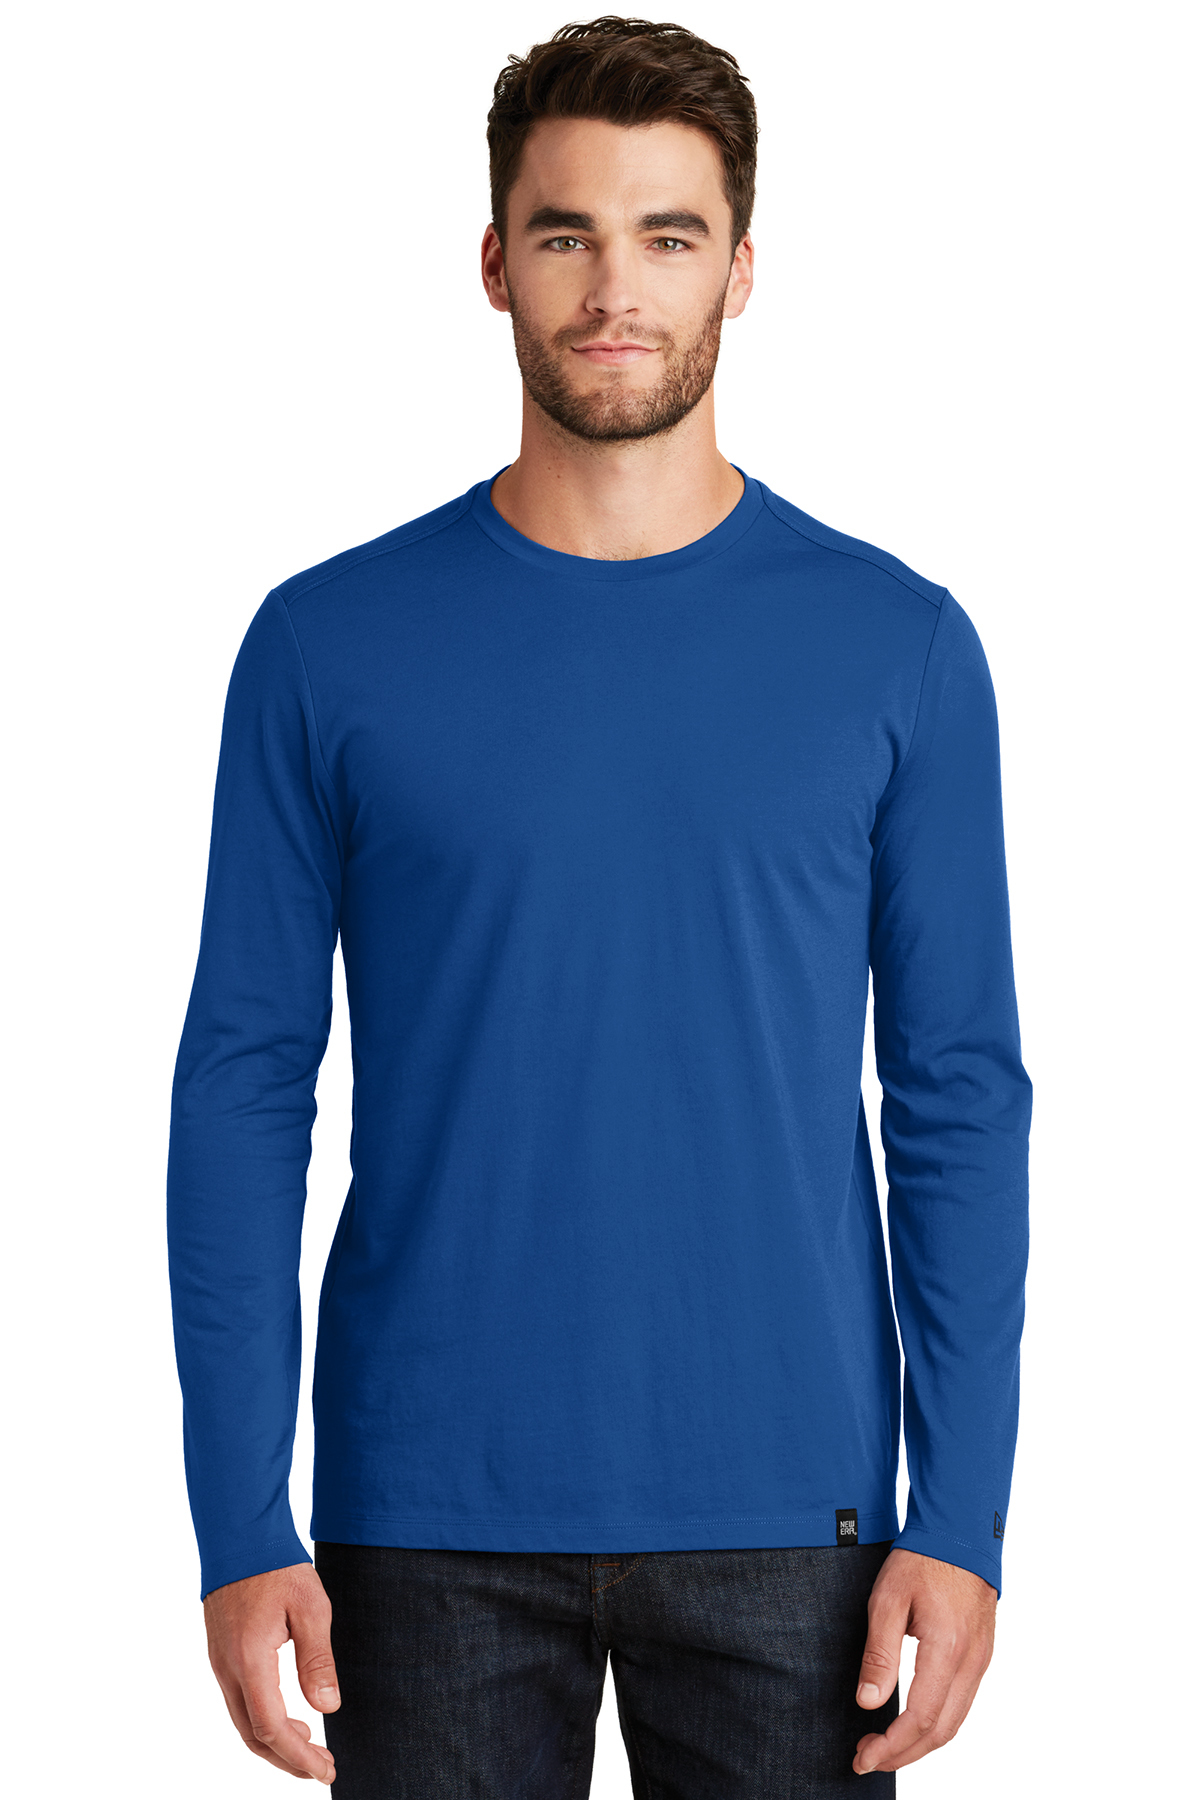 New Era NEA102 - Men's Heritage Blend Long Sleeve Crew Tee